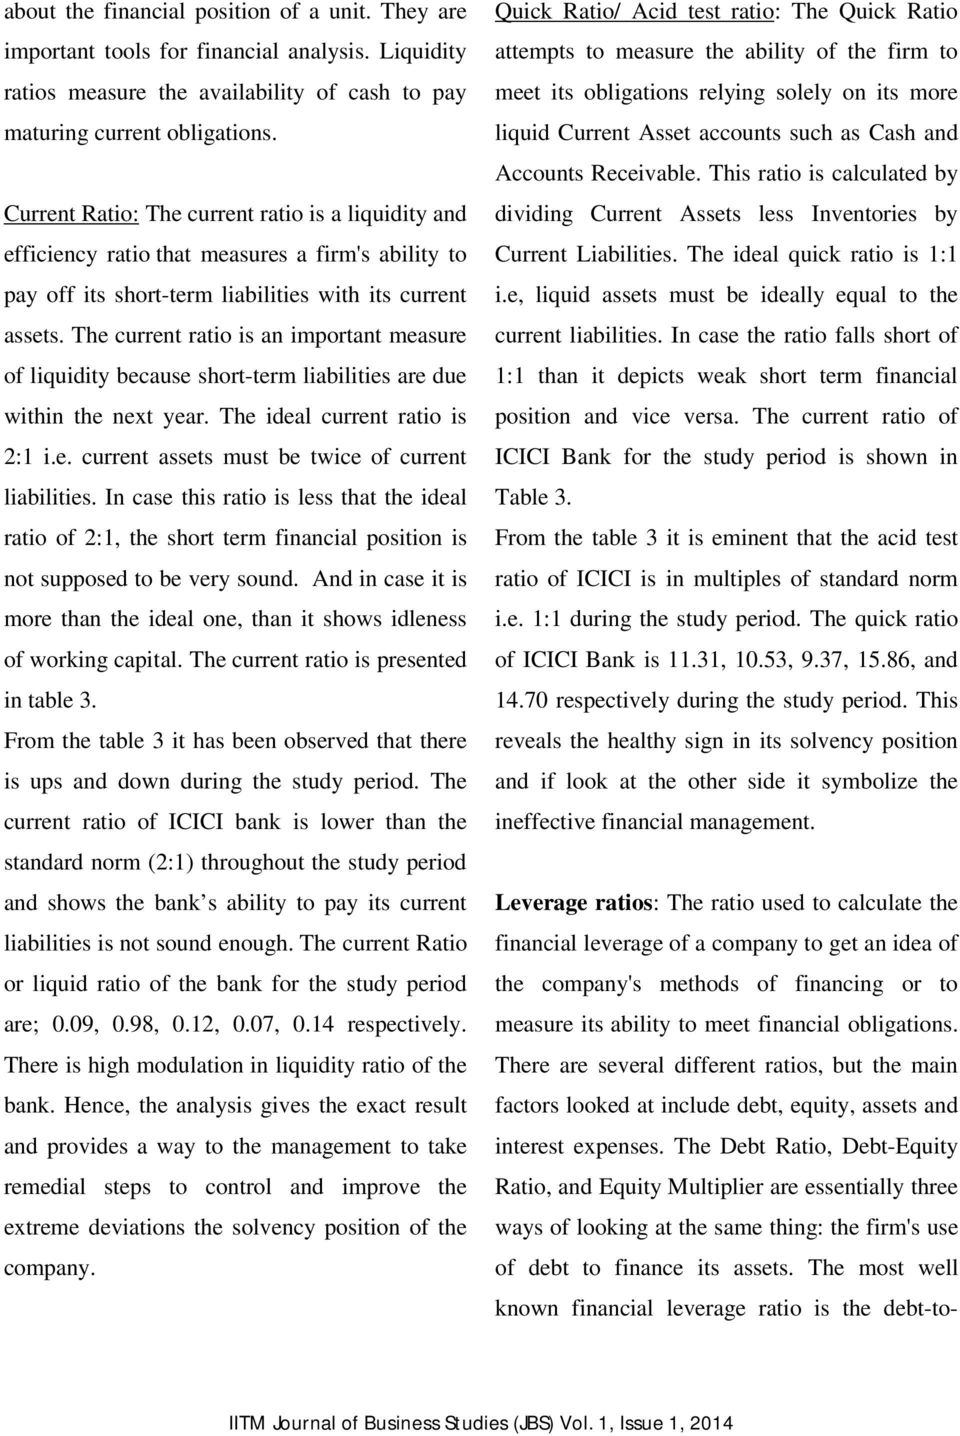 AN EMPIRICAL STUDY OF FINANCIAL PERFORMANCE OF ICICI BANK- A